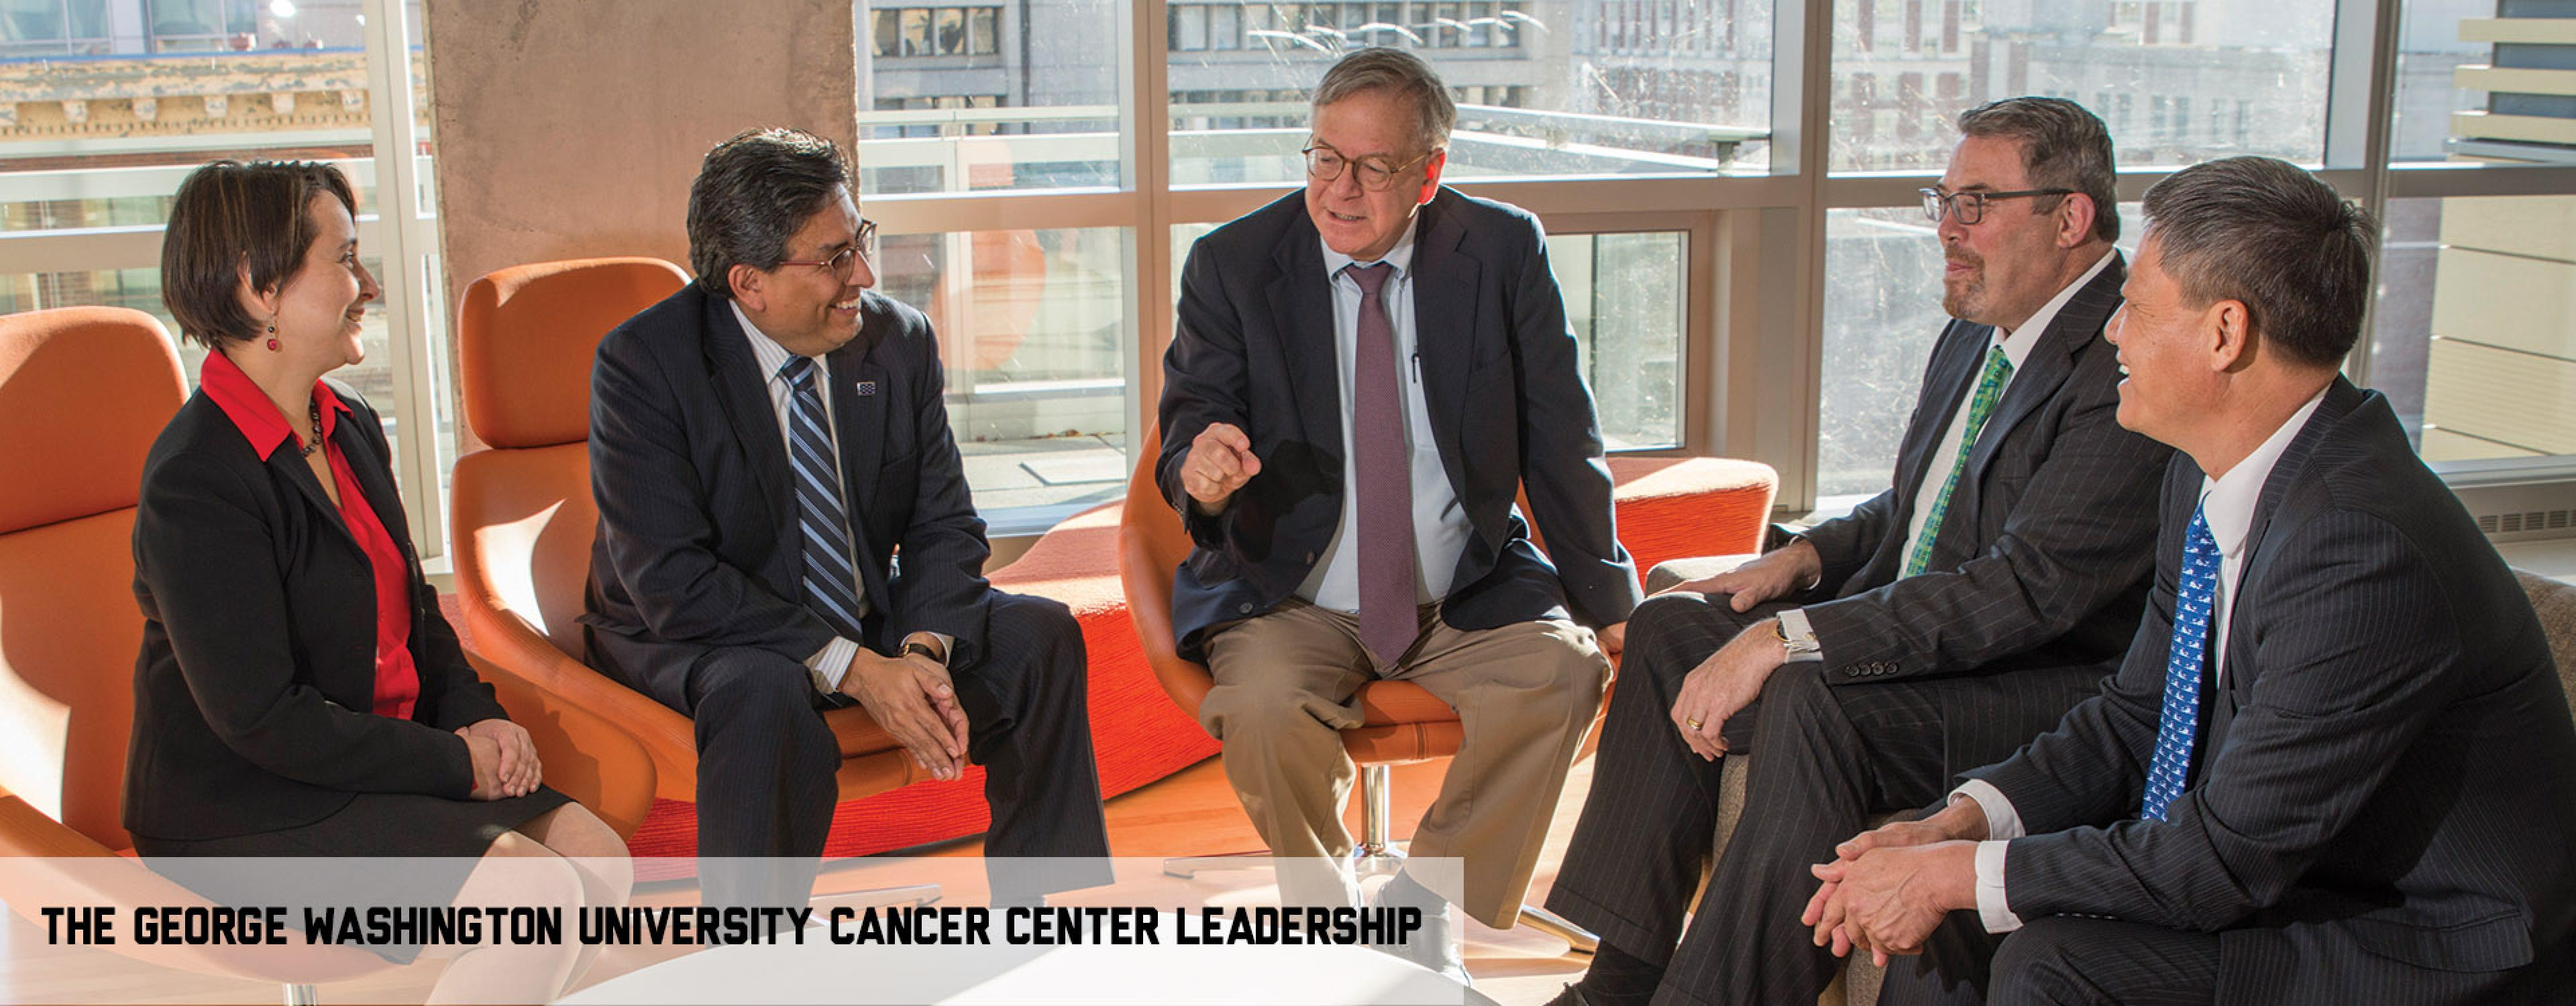 Group photo of GW Cancer Center leaders.